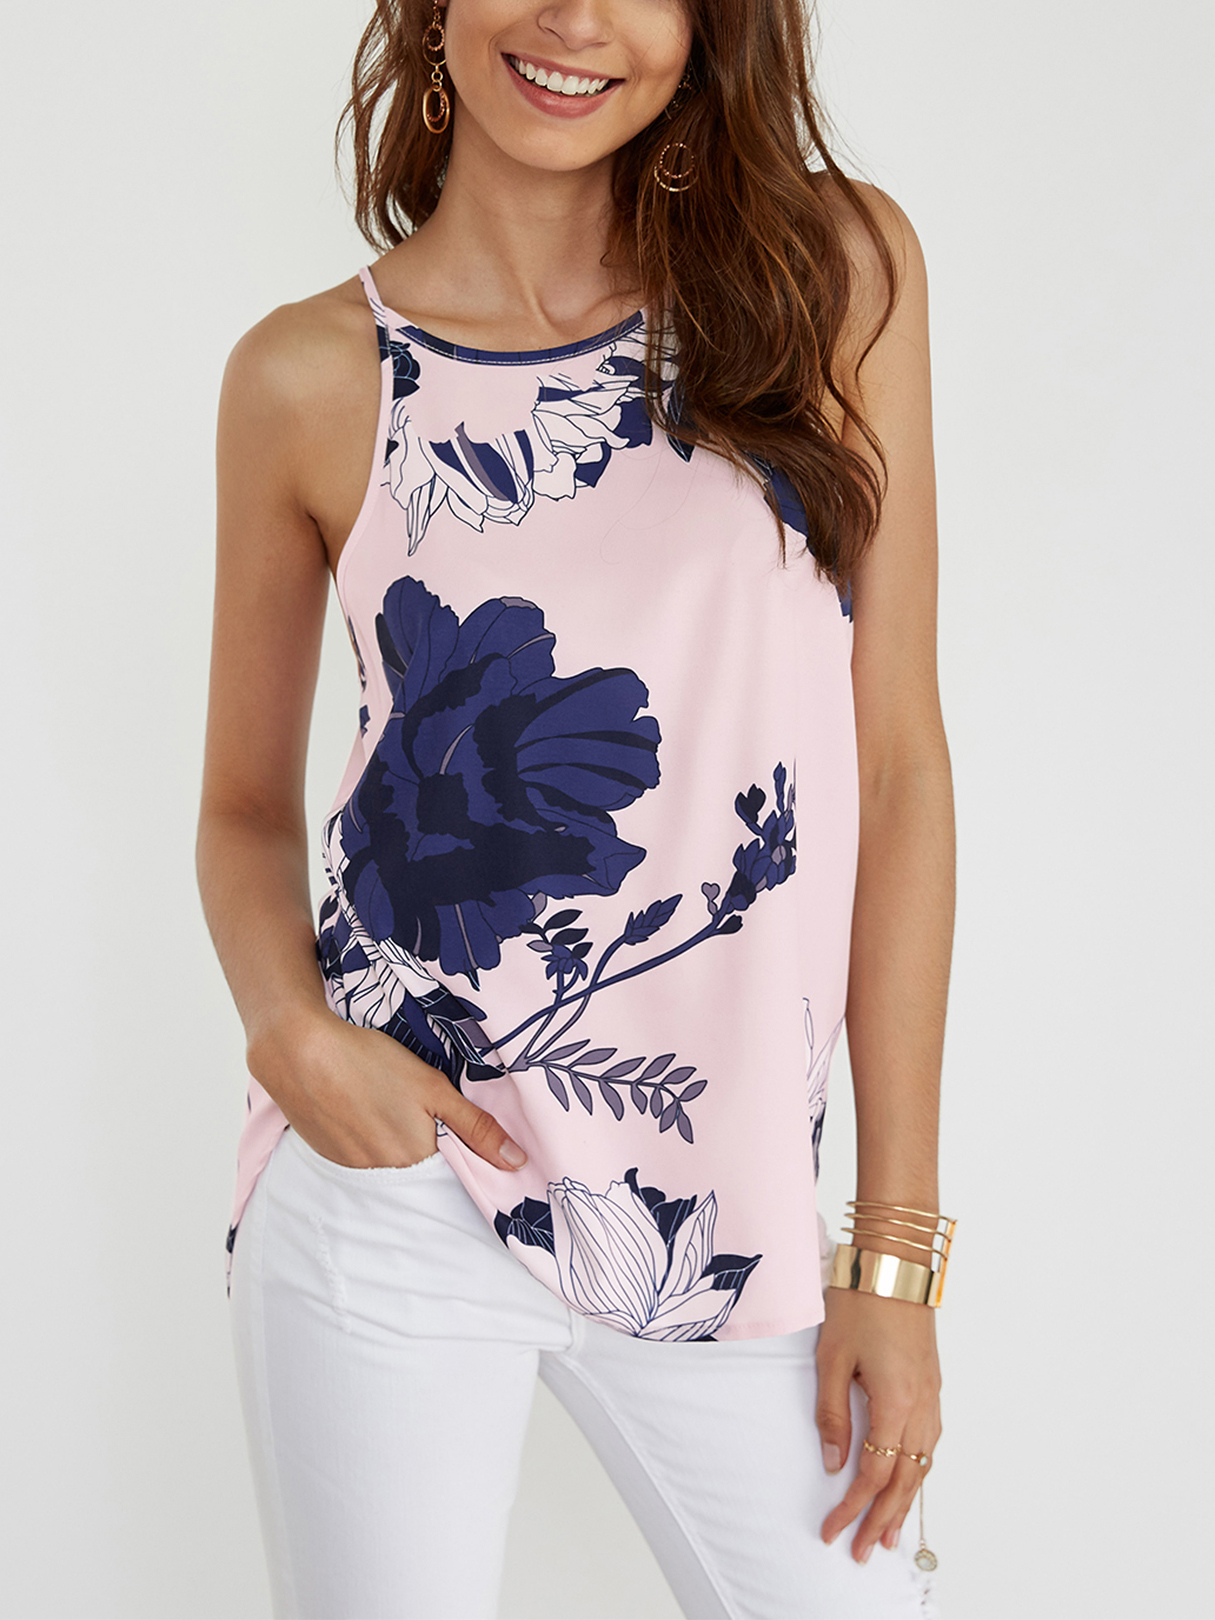 Light Pink Random Floral Print Halter Design Cami Top, Multi